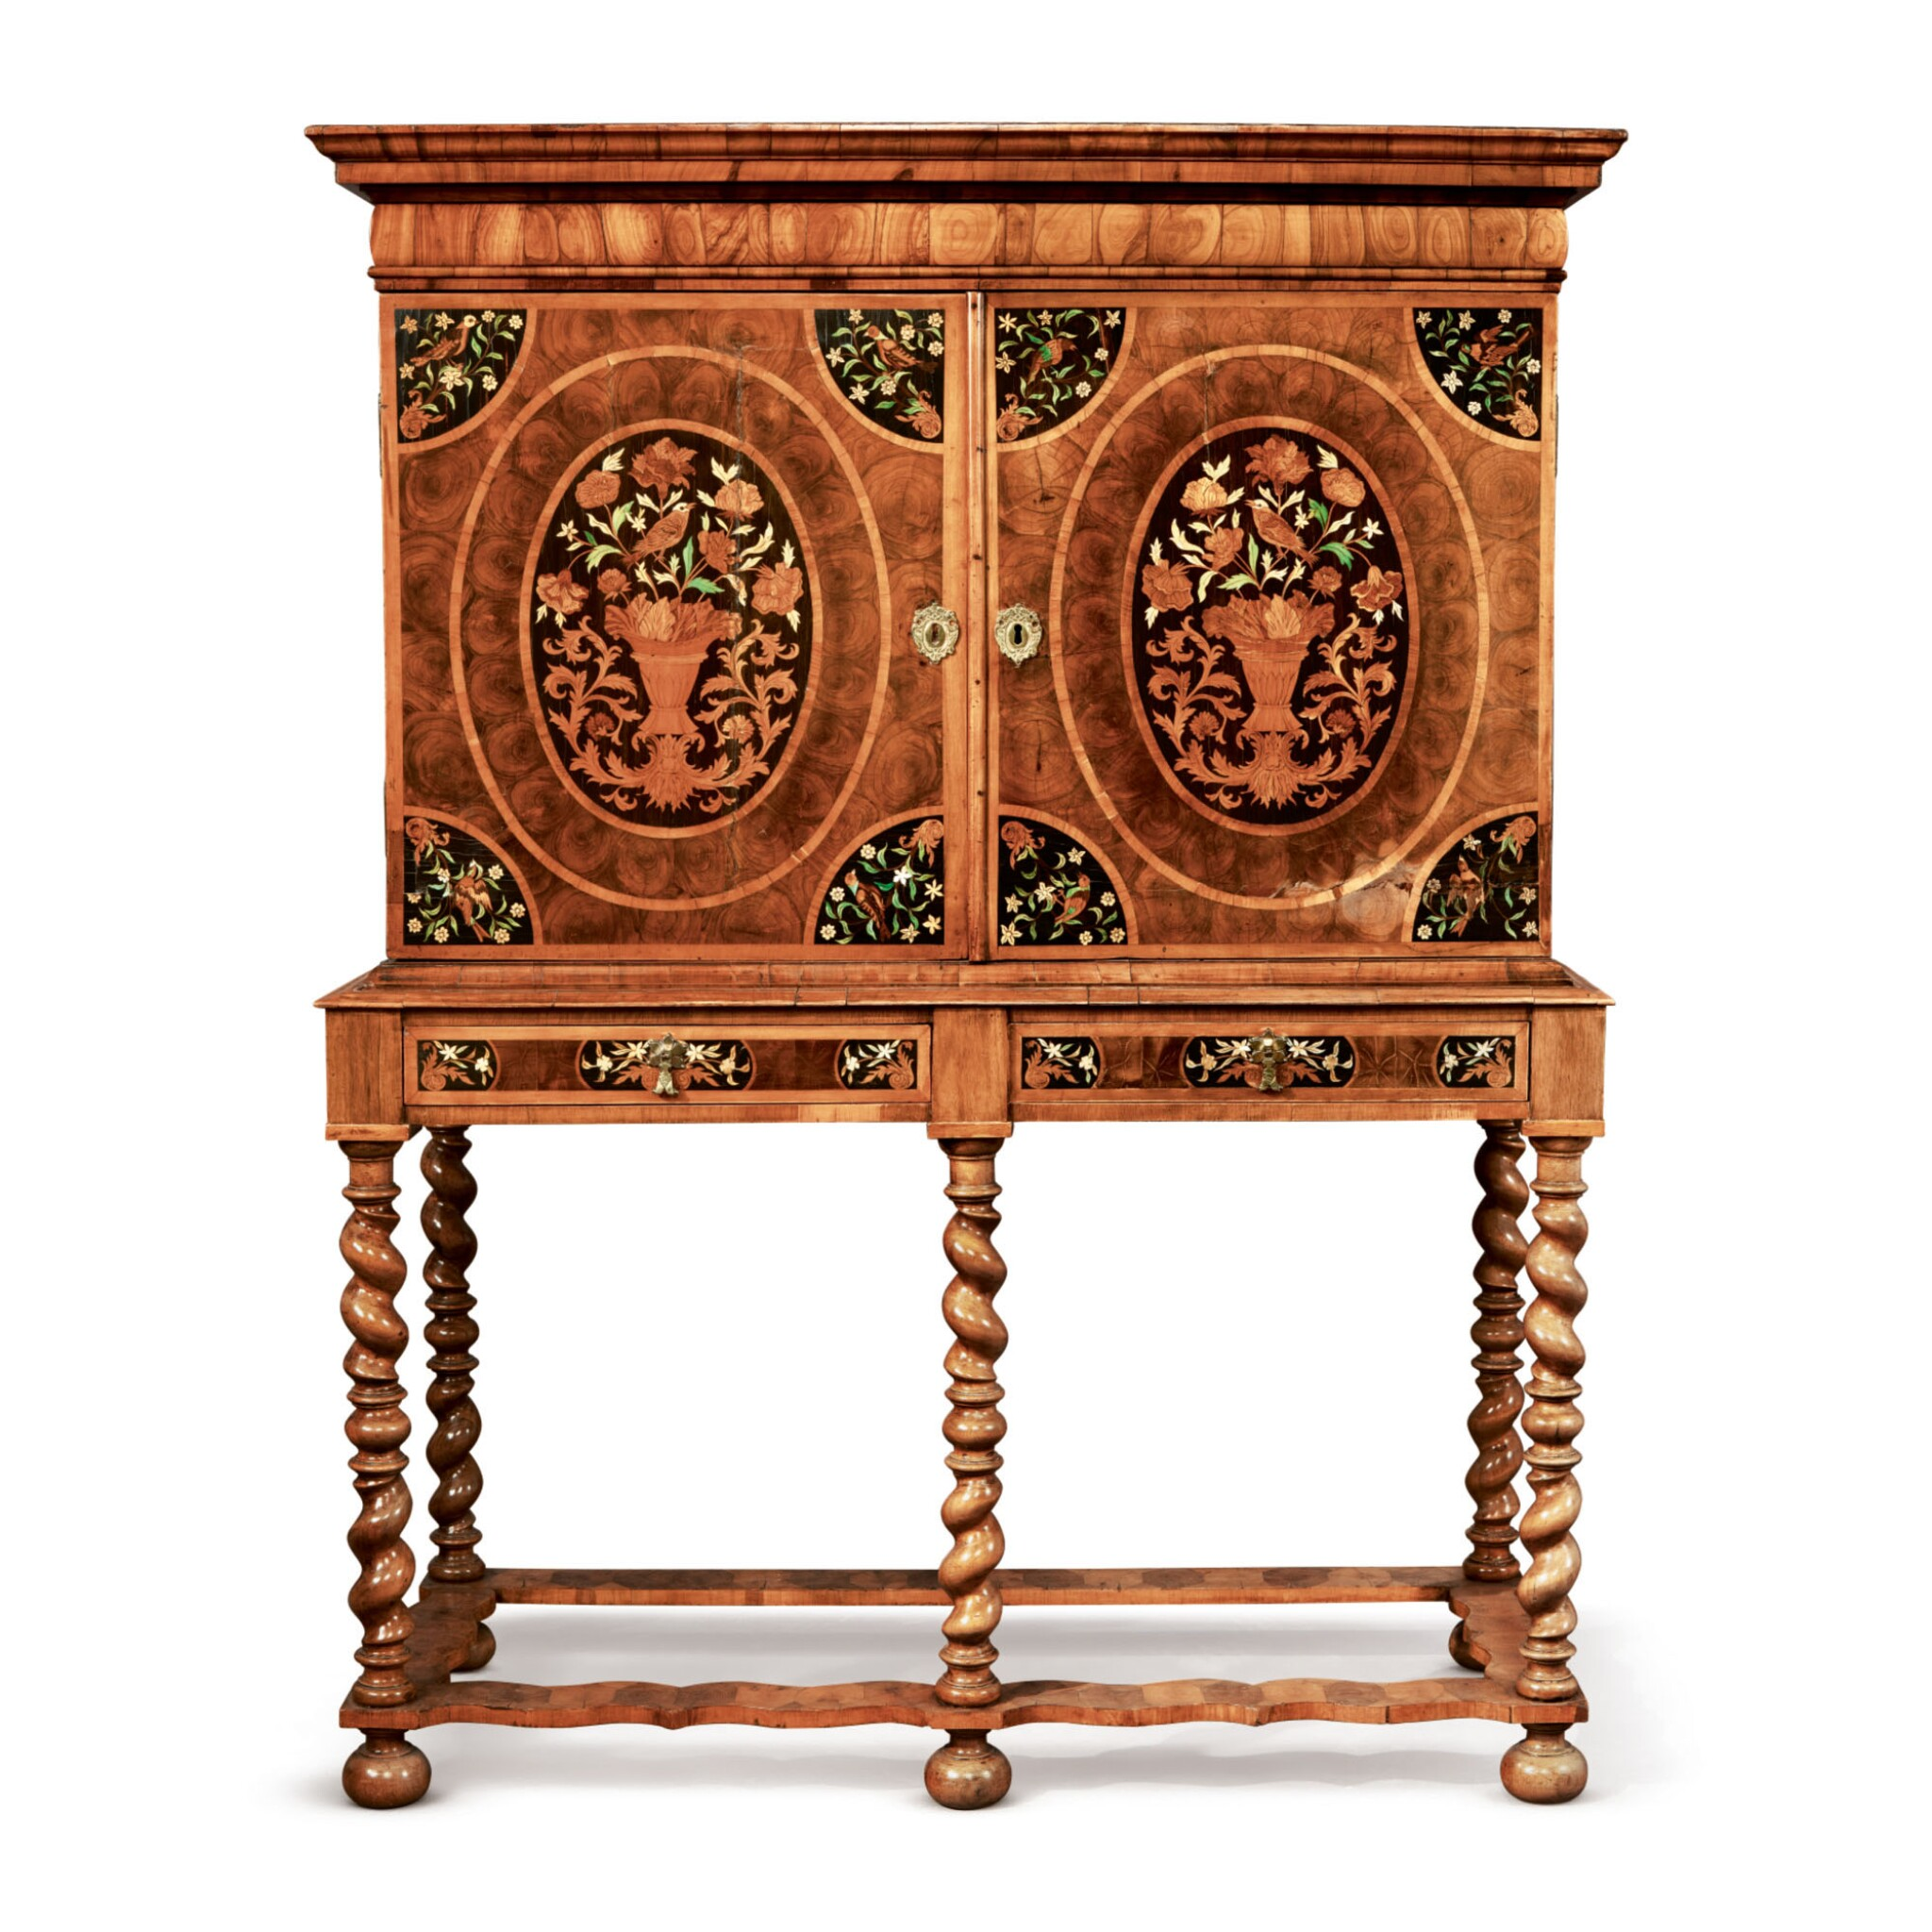 View 1 of Lot 524. A WILLIAM AND MARY OYSTER-VENEERED WALNUT AND FLORAL MARQUETRY CABINET ON STAND, LATE 17TH CENTURY.